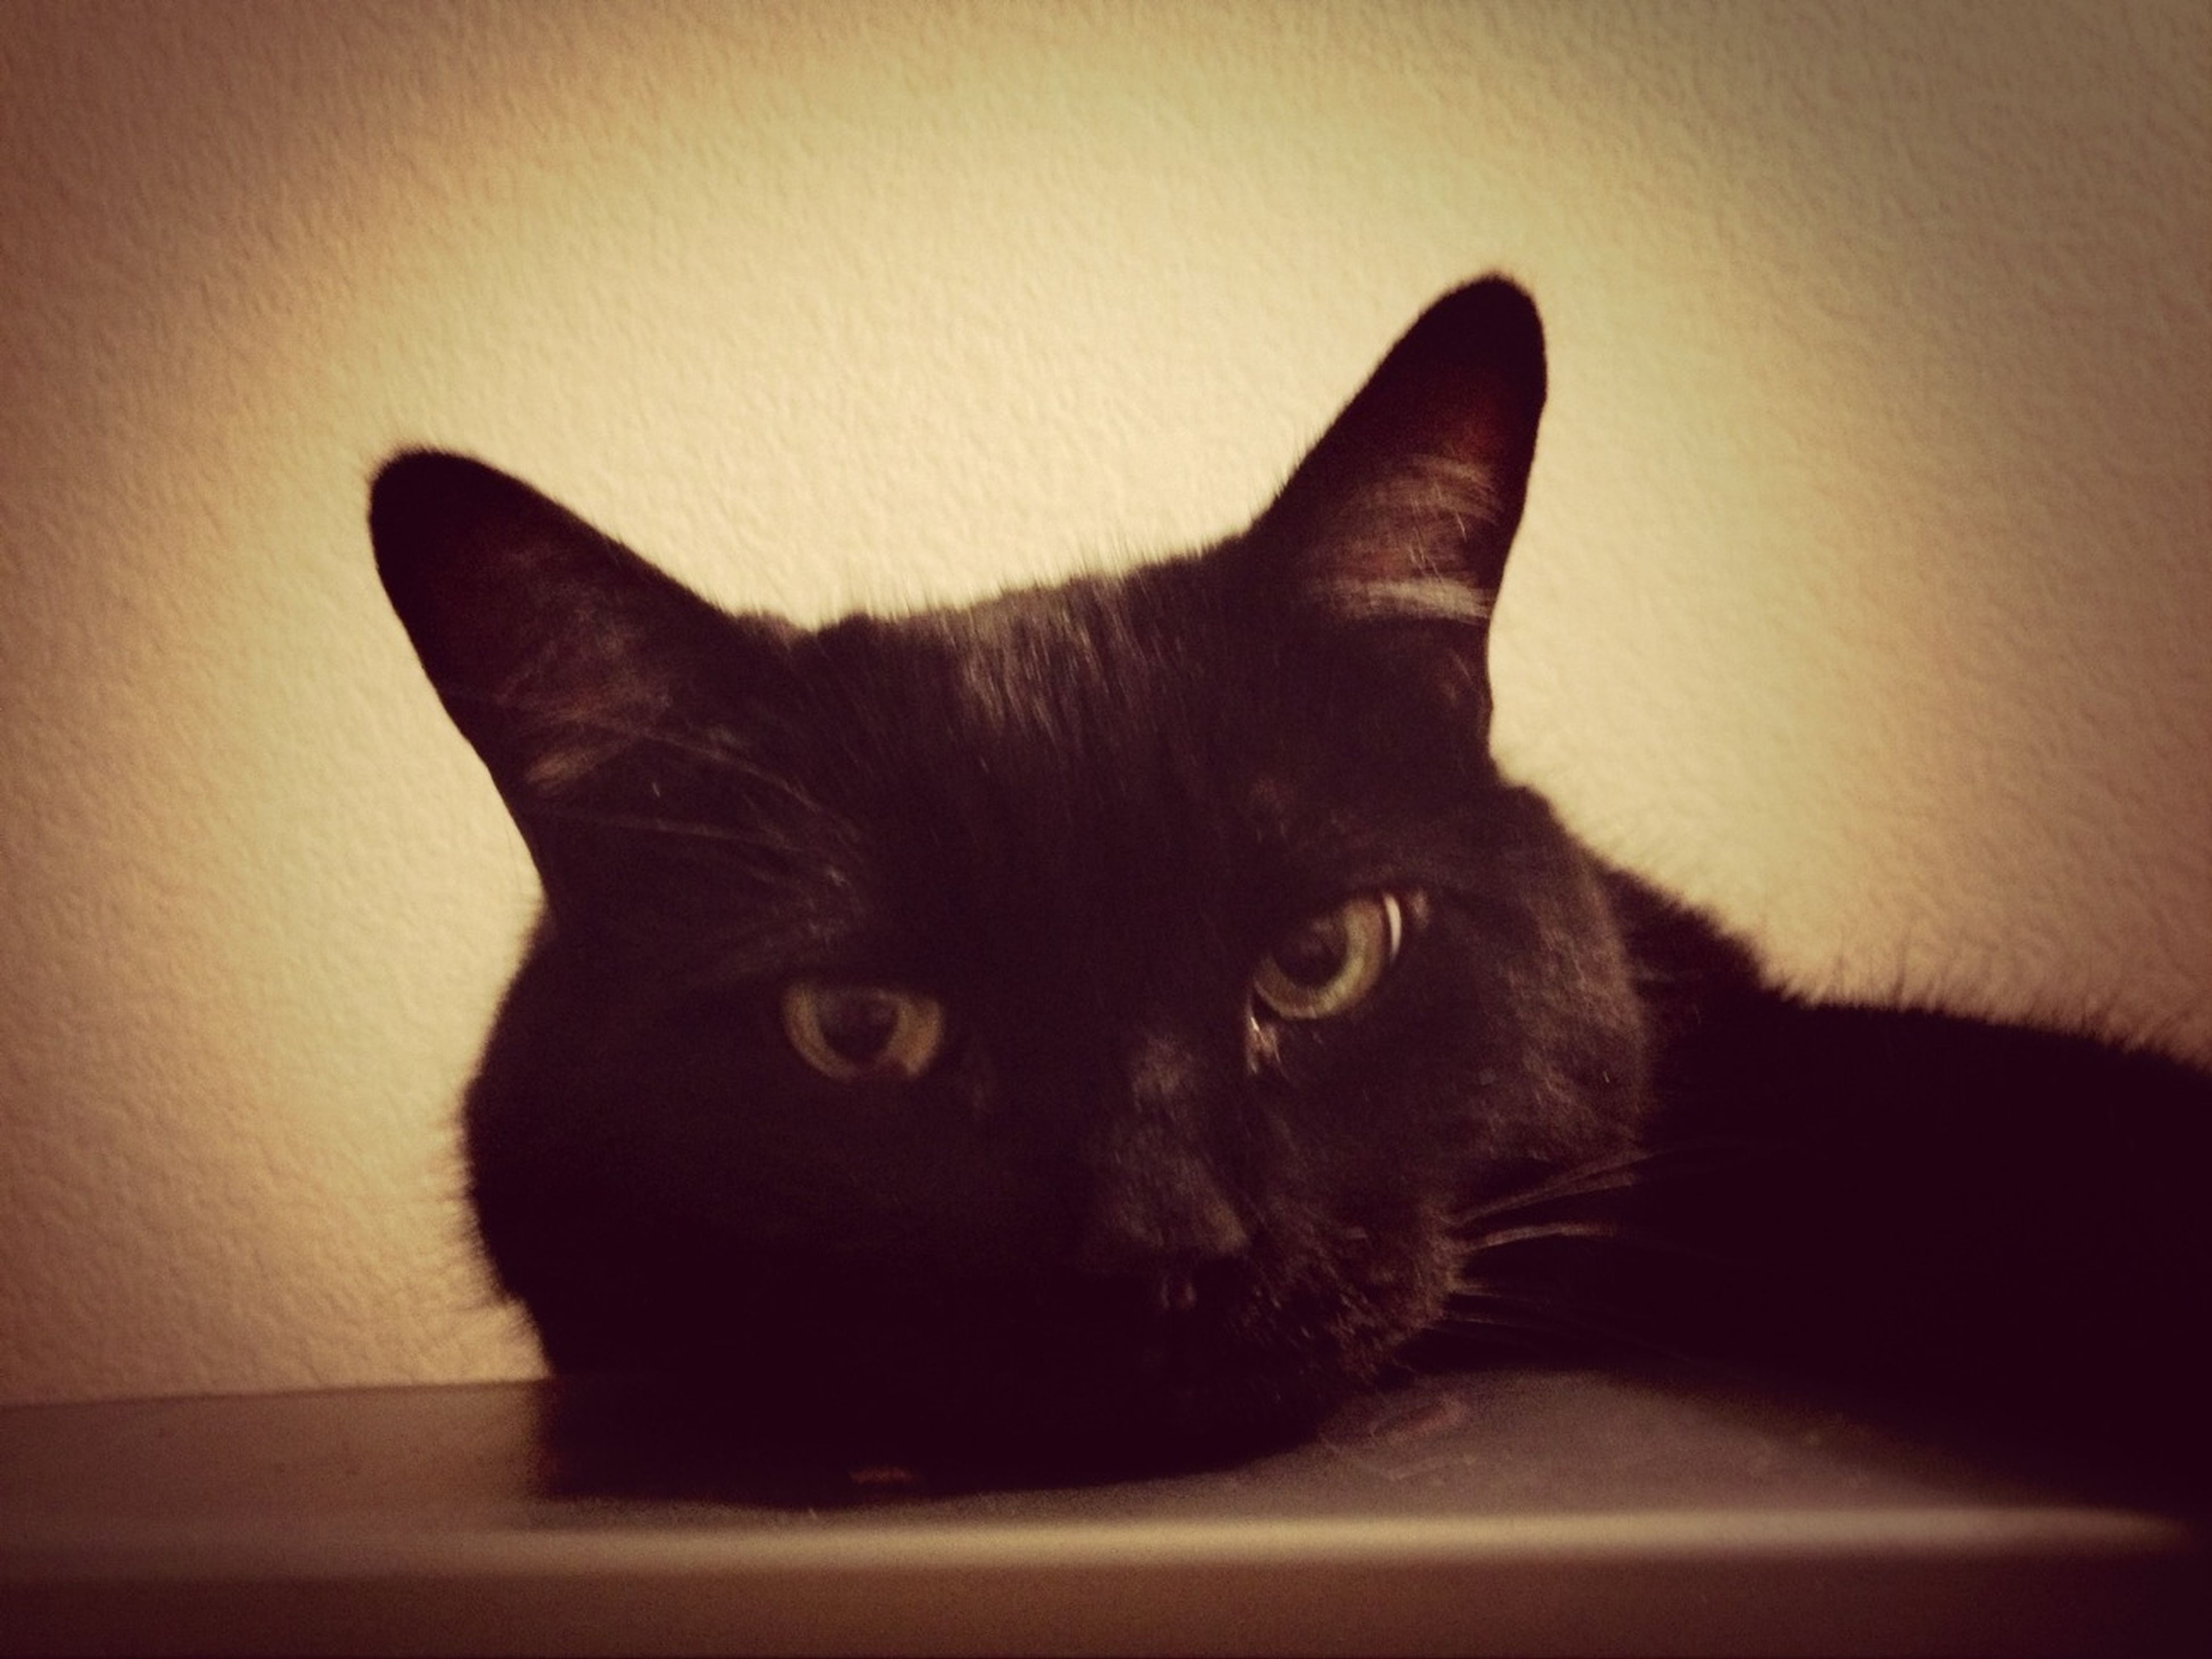 domestic cat, pets, cat, domestic animals, indoors, one animal, feline, animal themes, mammal, whisker, portrait, looking at camera, close-up, black color, staring, animal head, relaxation, alertness, home interior, animal eye